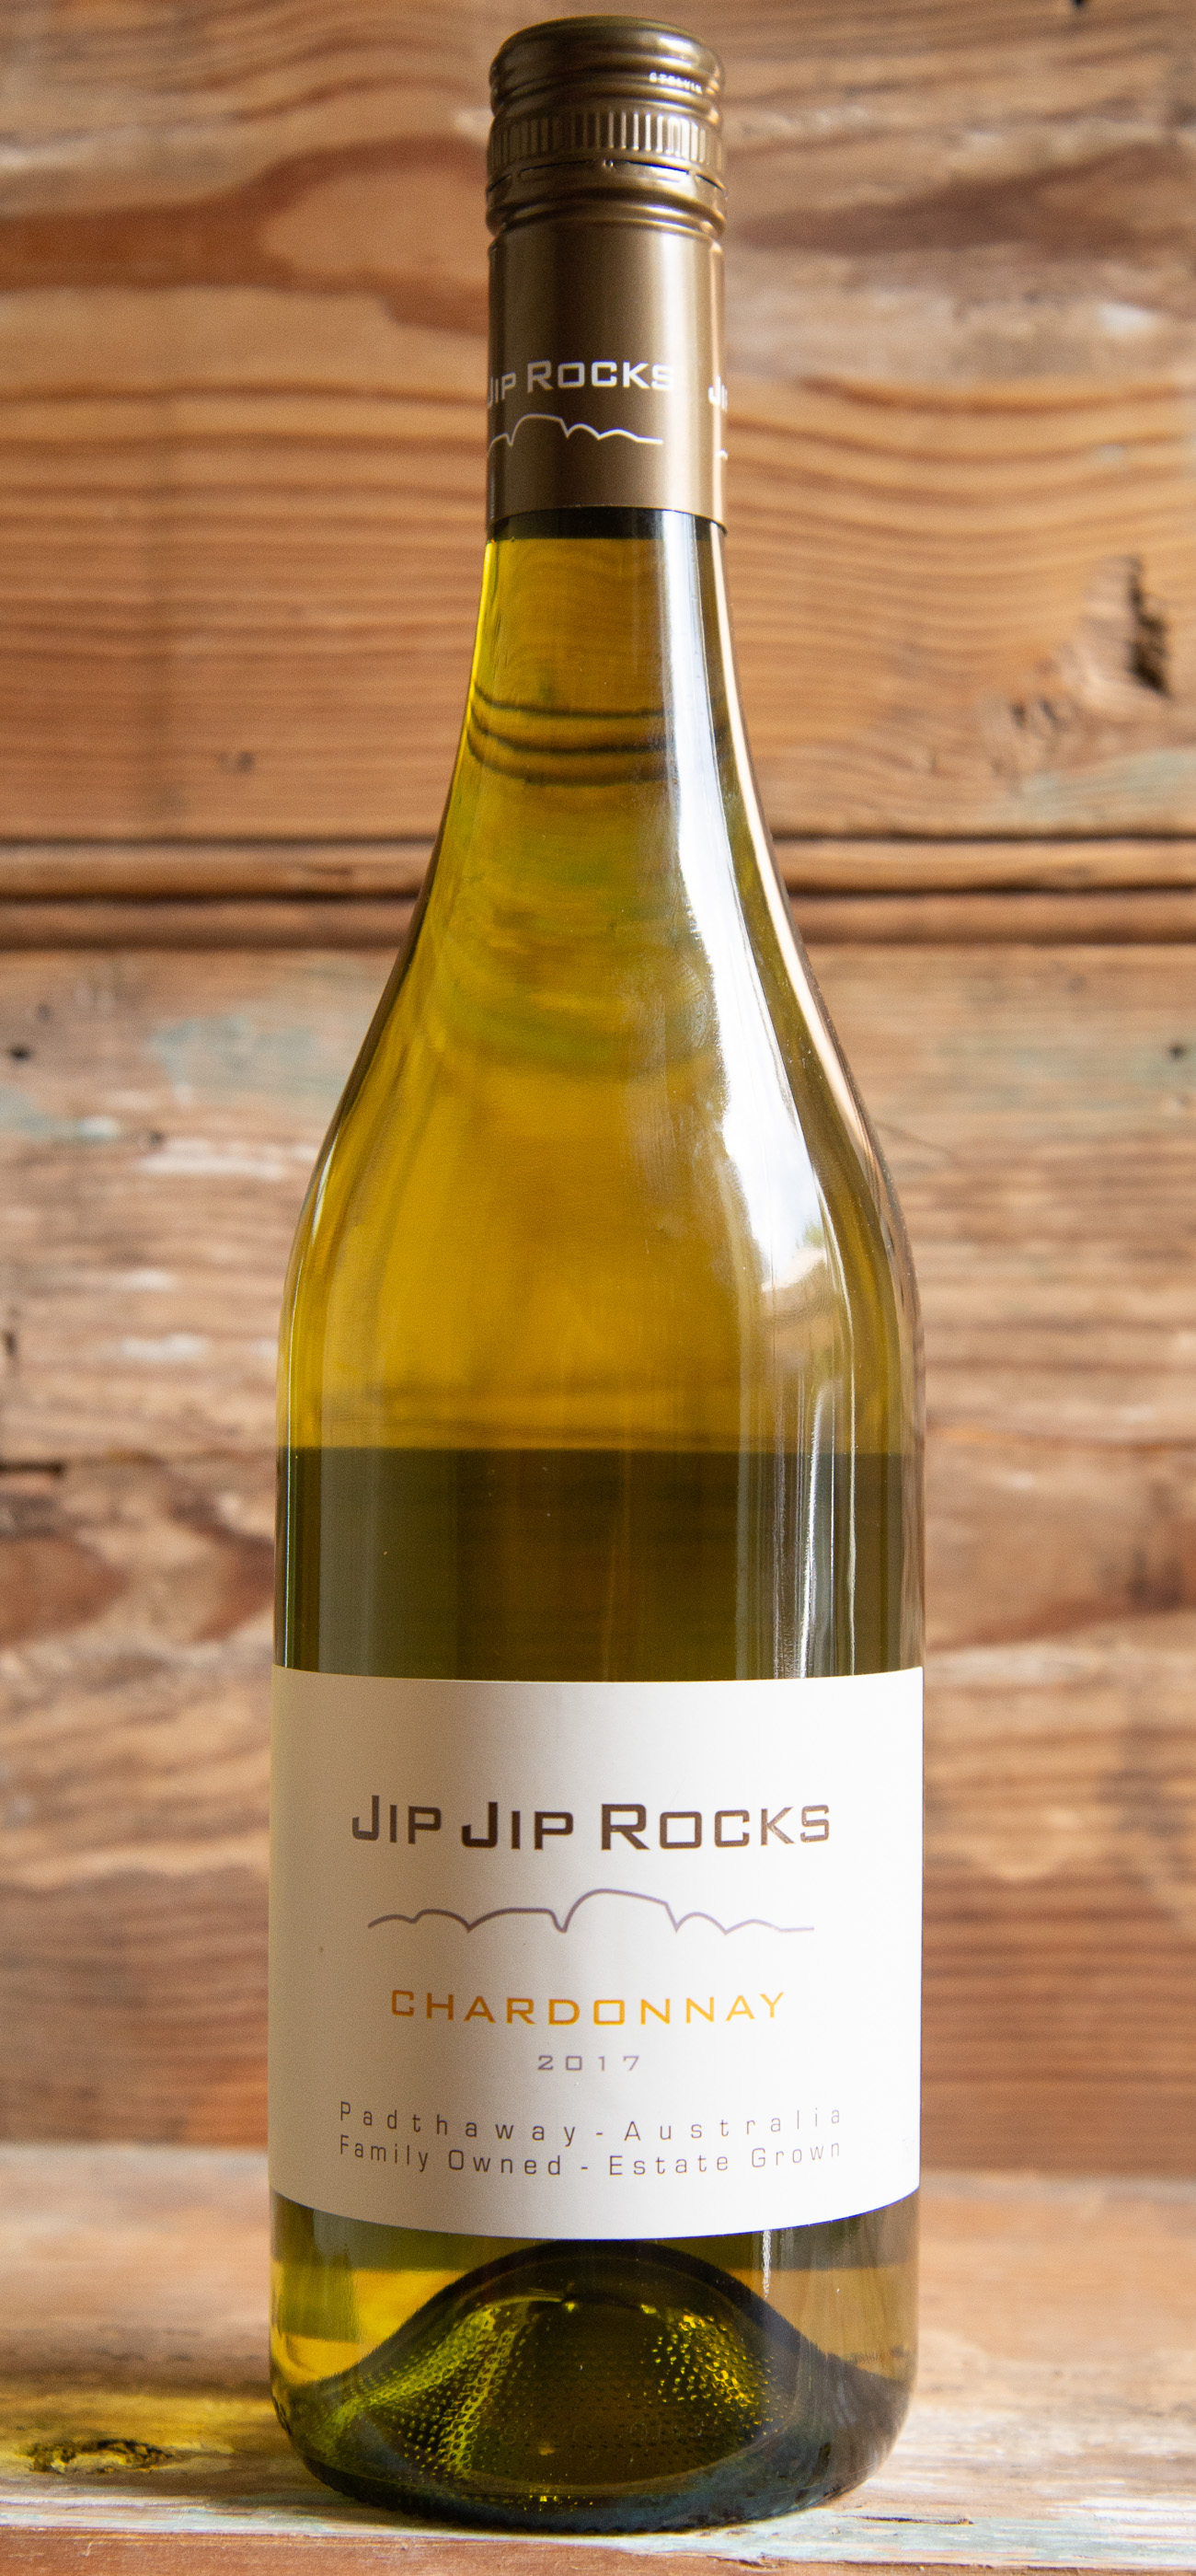 Jip Jip Rocks Chardonnay 2017 - Origin: Australia Retail: $14.95 | Sale: $13.45This family-owned vineyard is located in the Padthaway valley within South Australia's Limestone Coast wine region. This Australian un-oaked chardonnay presents a beautiful light yellow with a pale straw hue. A classic nose of lemon, fresh stone fruit and melon are followed by a clean, fresh palate with hints of ripe pineapple and lime. This wine will age beautifully over the next 4-5 years.100% Chardonnay.Sustainable.90 points Robert Parker's Wine Advocate.